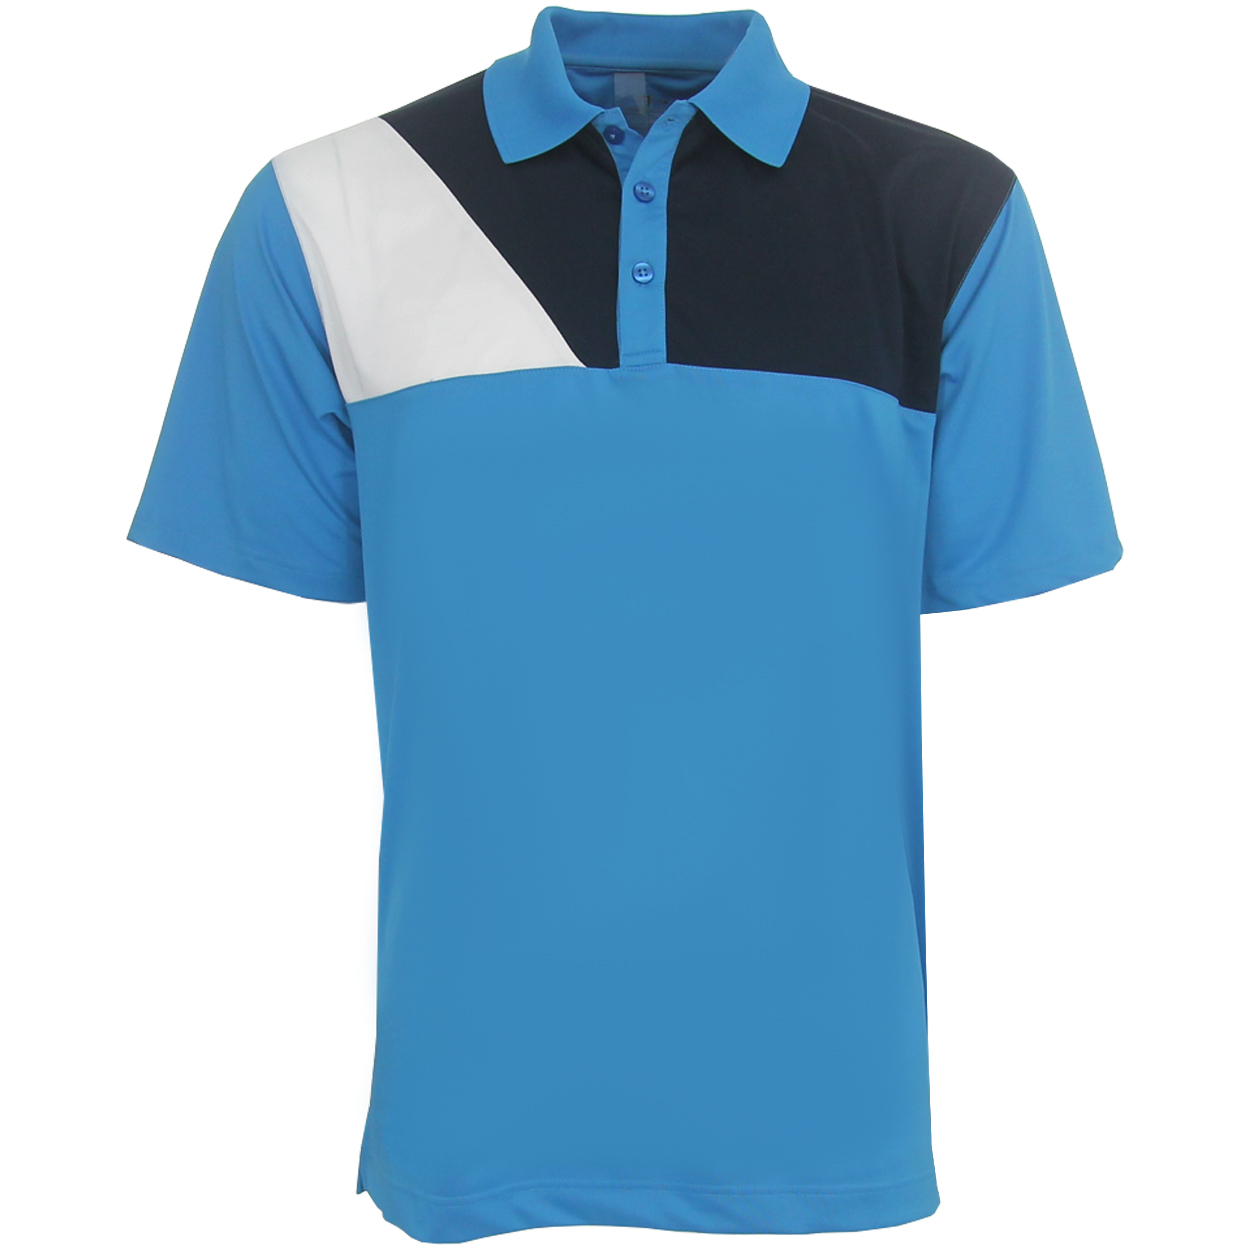 Page Tuttle Cool Swing 3 Panel Polo Golf Shirt